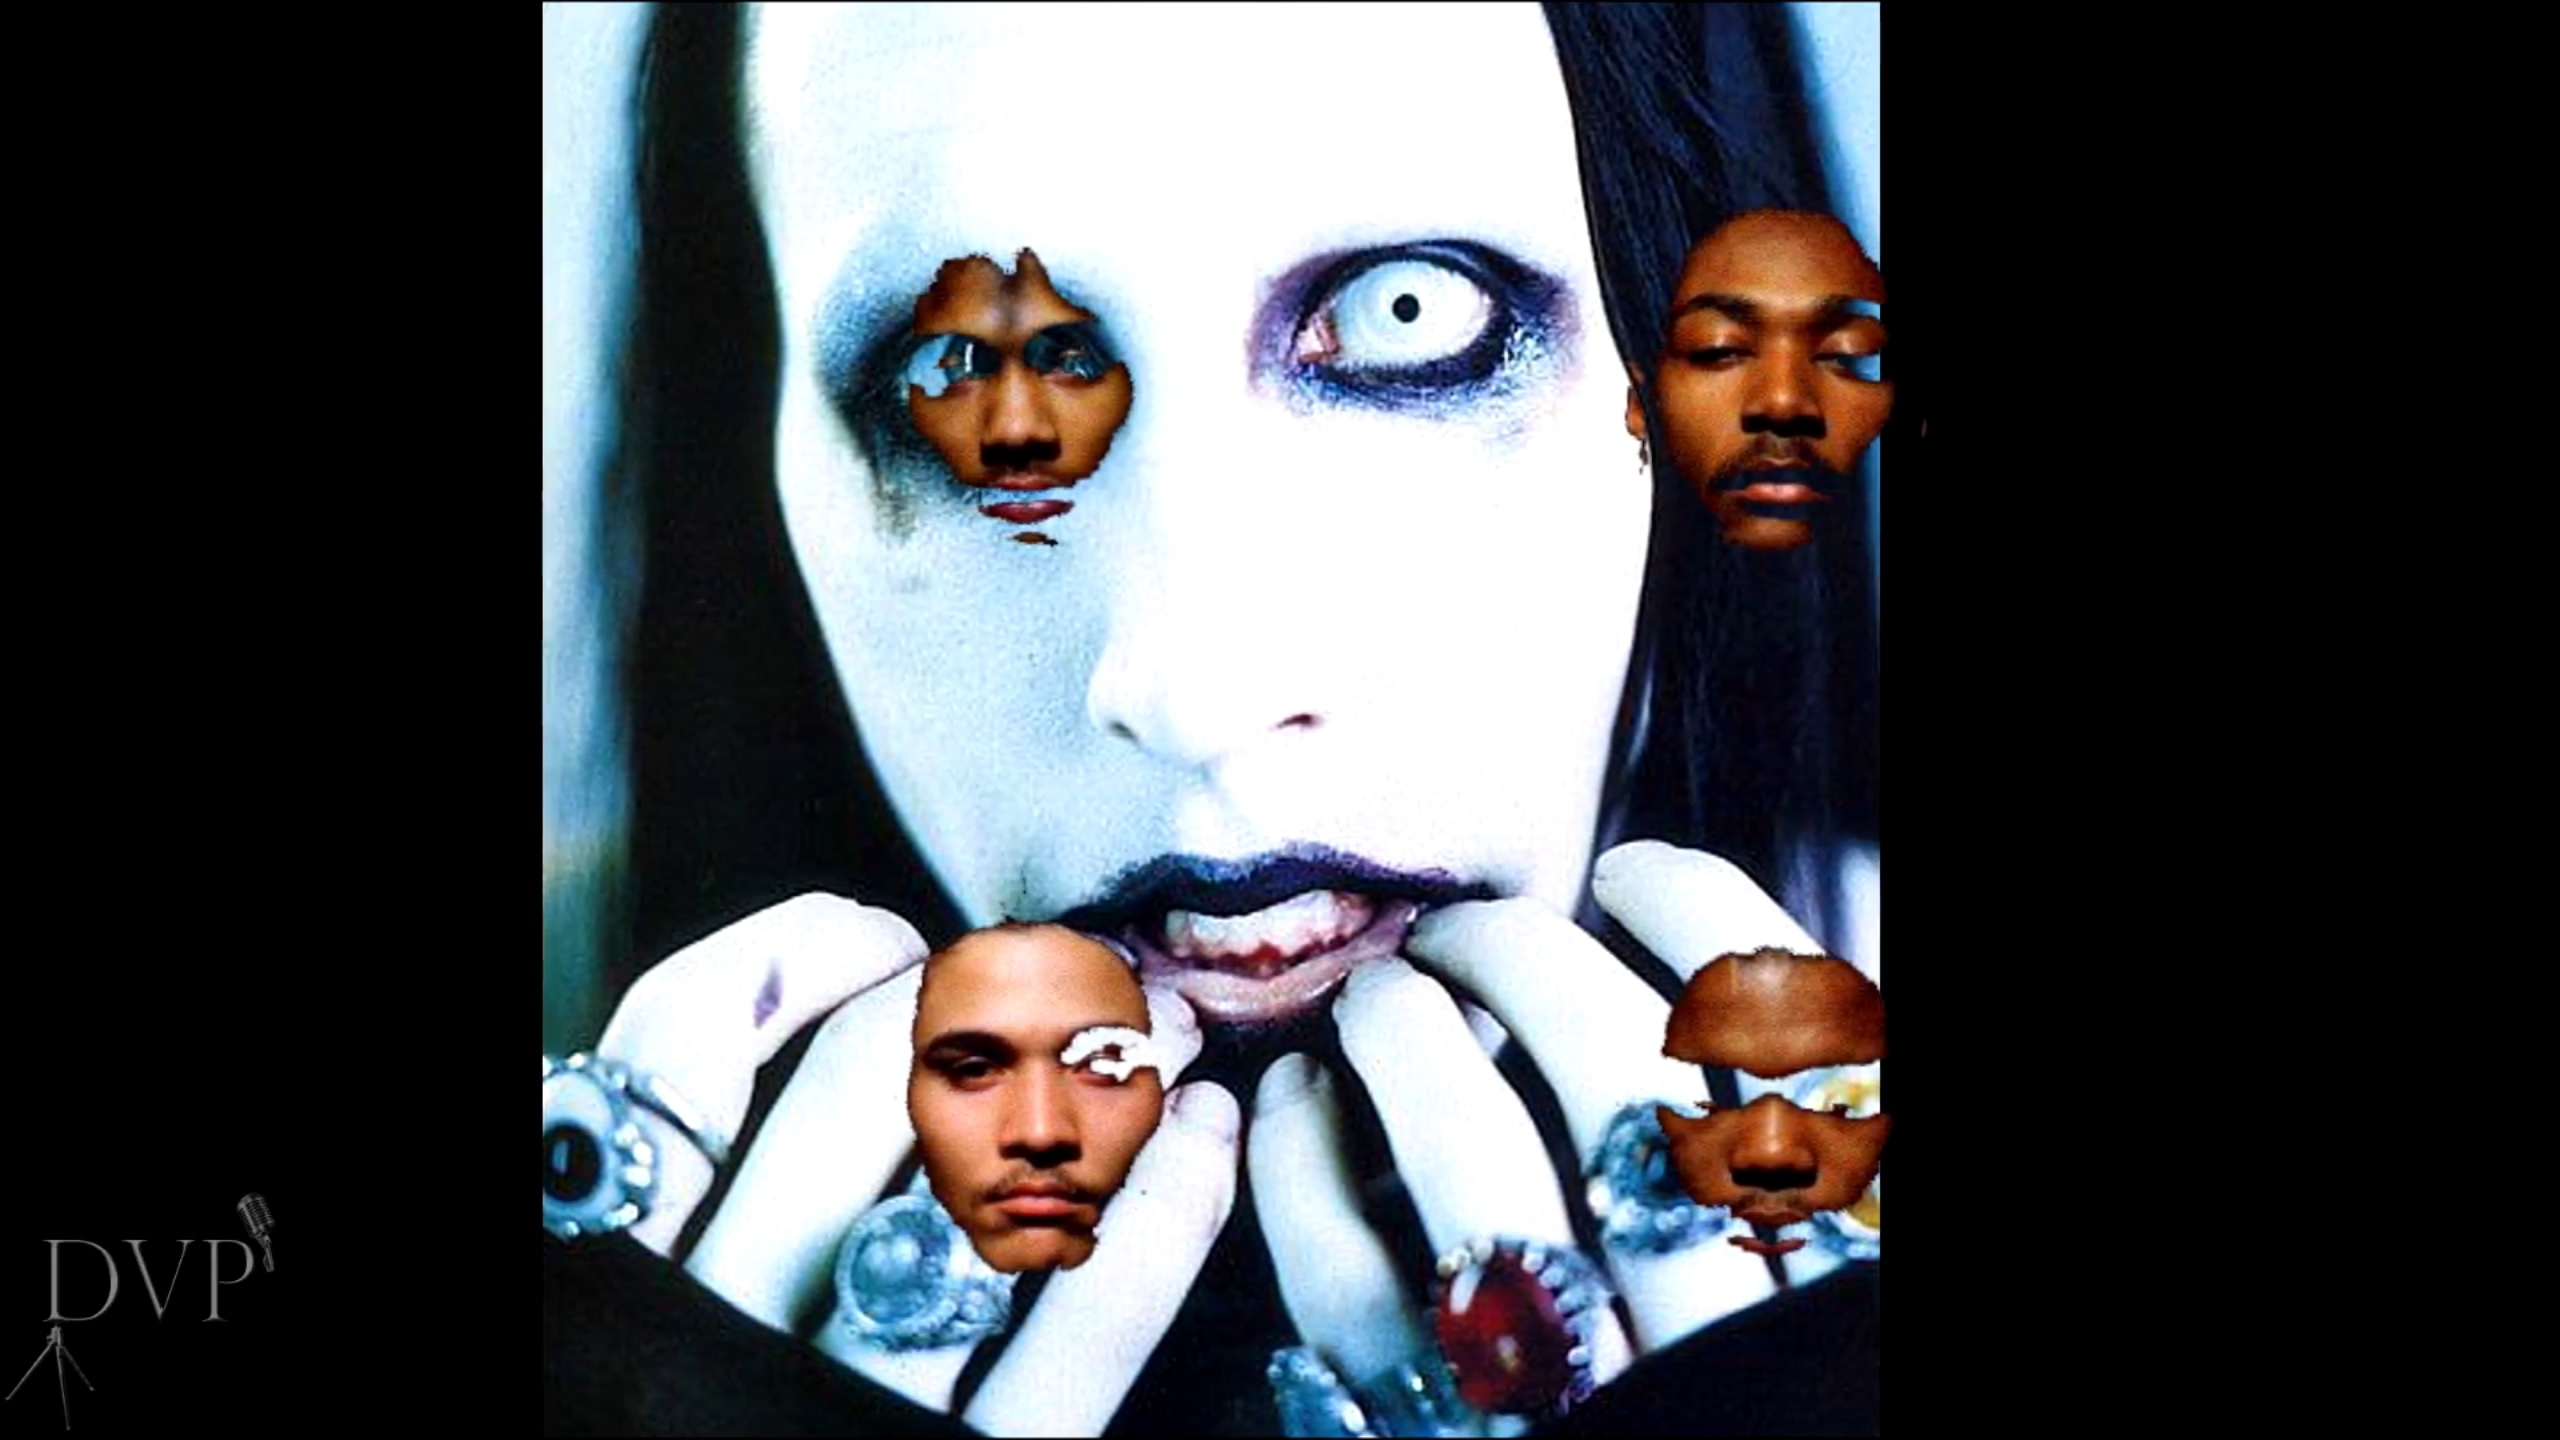 Beautiful Crossroads People (Marilyn Manson vs. Bone Thugs N Harmony)